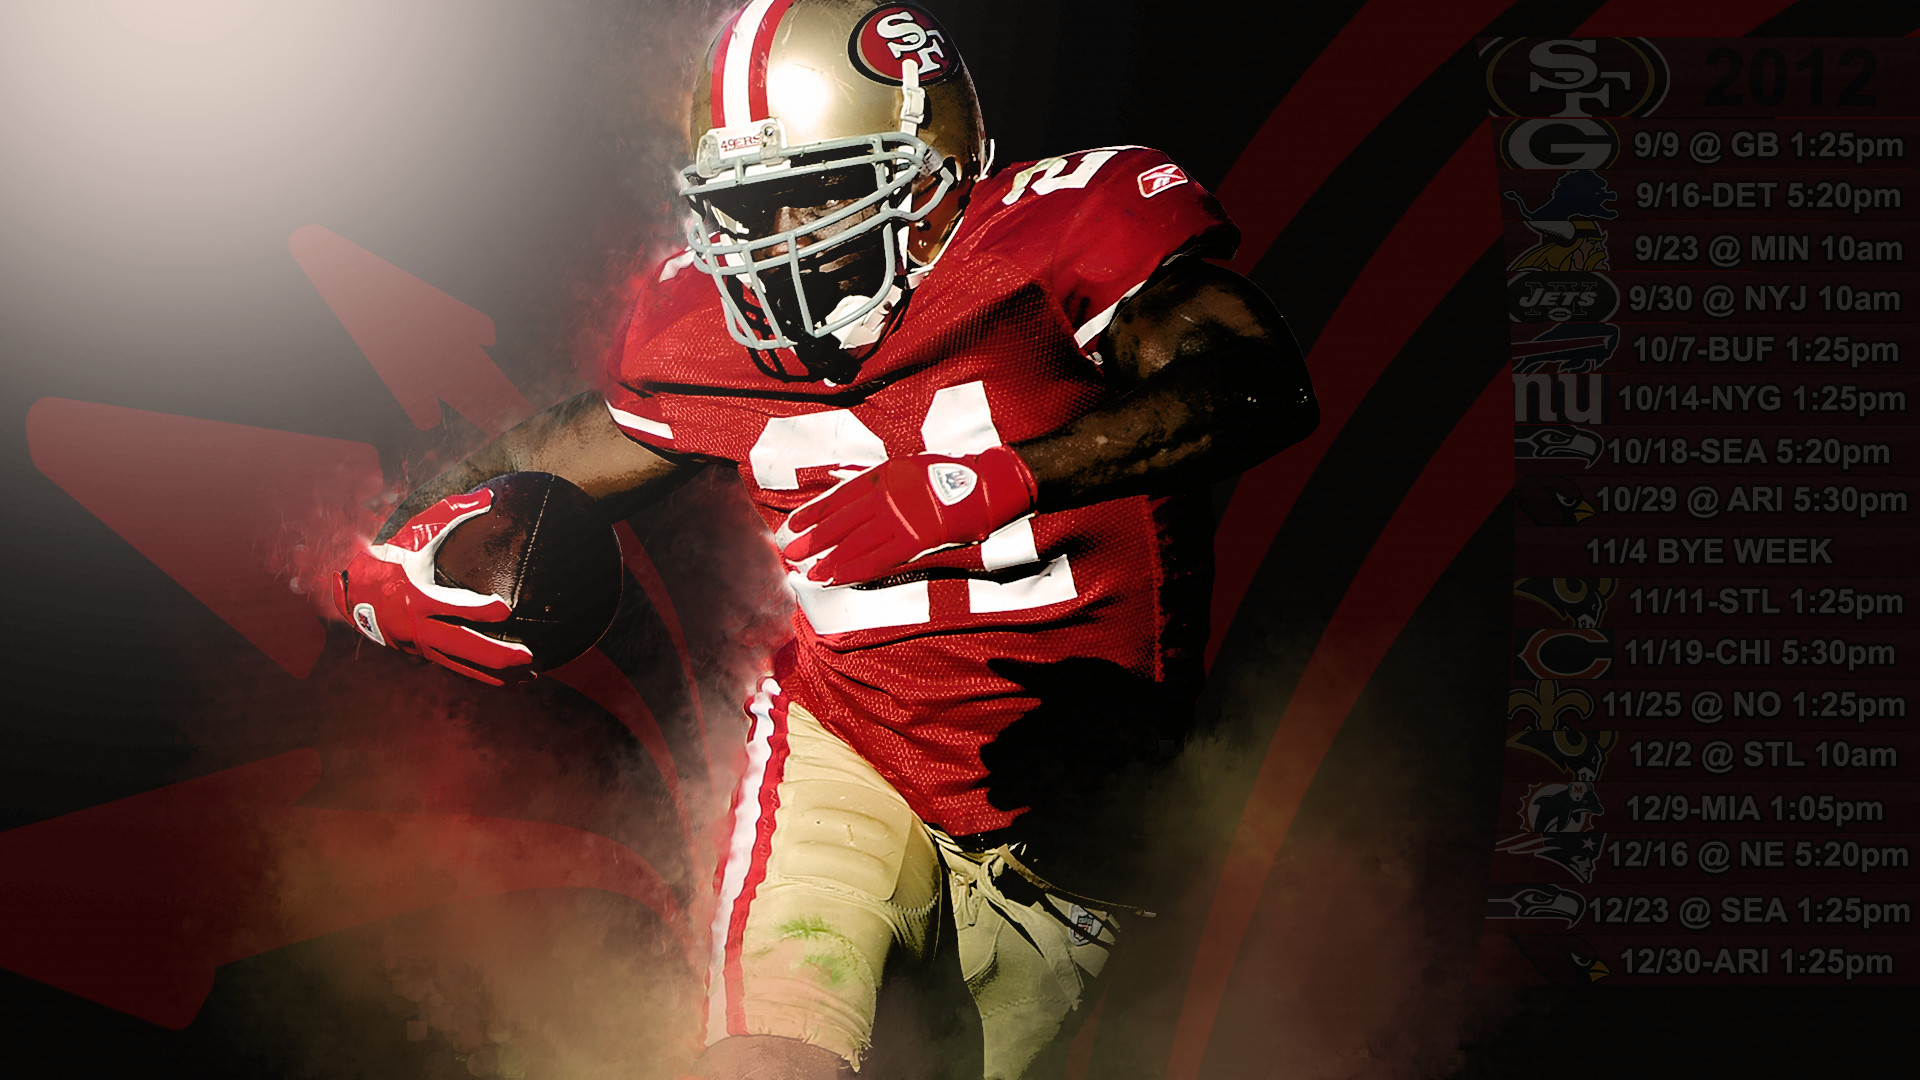 1920x1080 49Ers Hd wallpaper